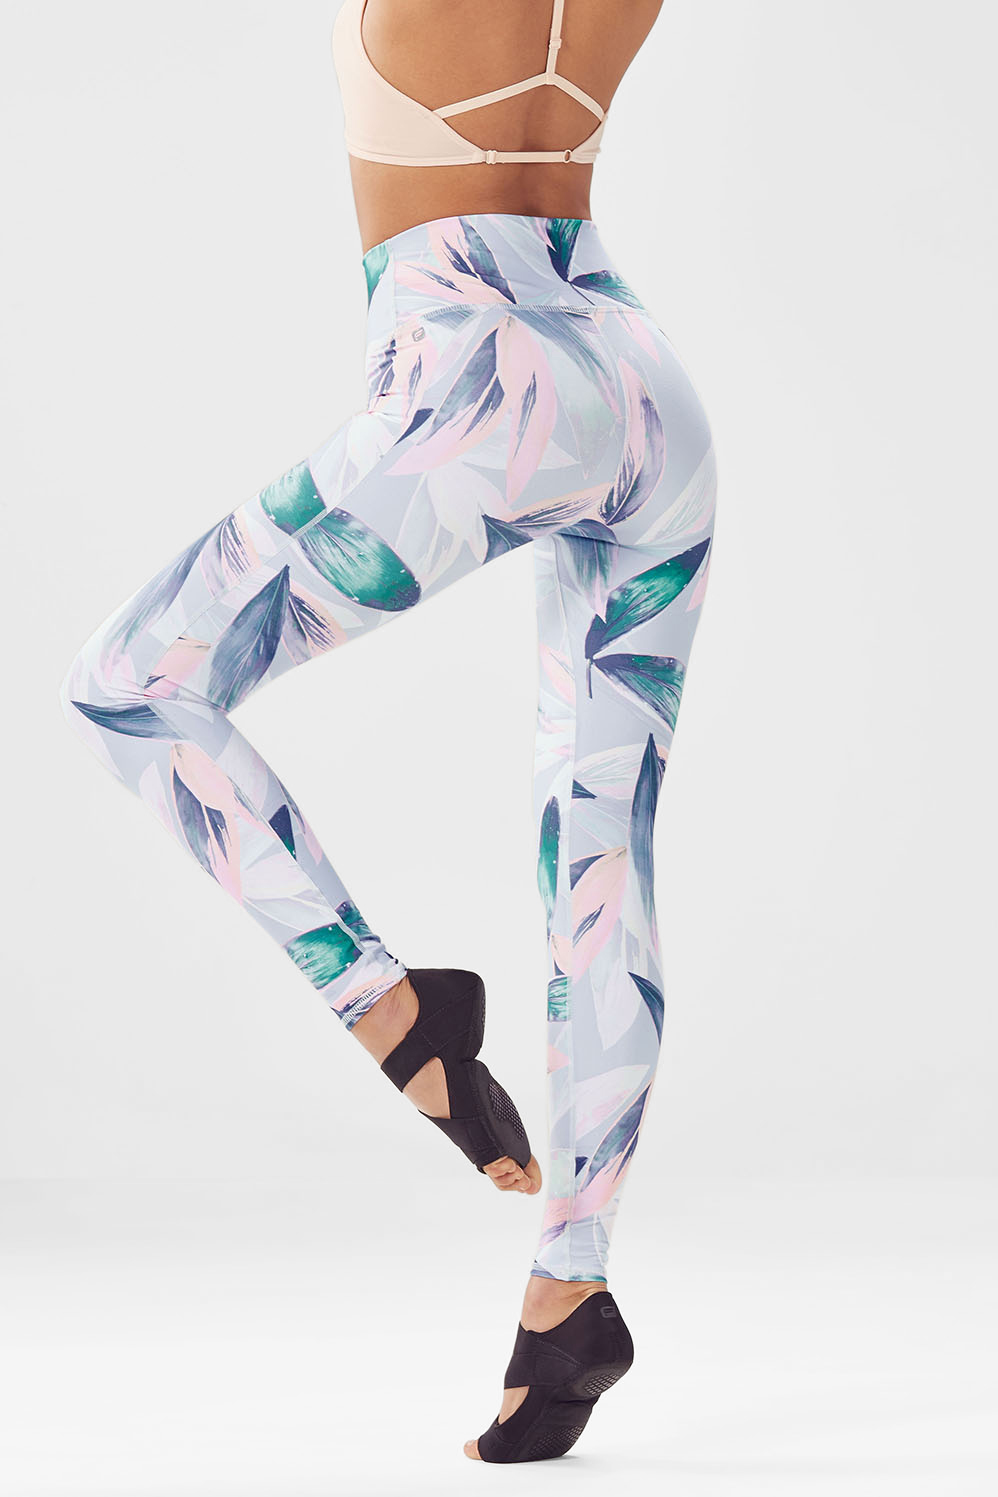 Fabletics Tight High-Waisted Printed Powerhold Legging Womens White/Blue Size XL